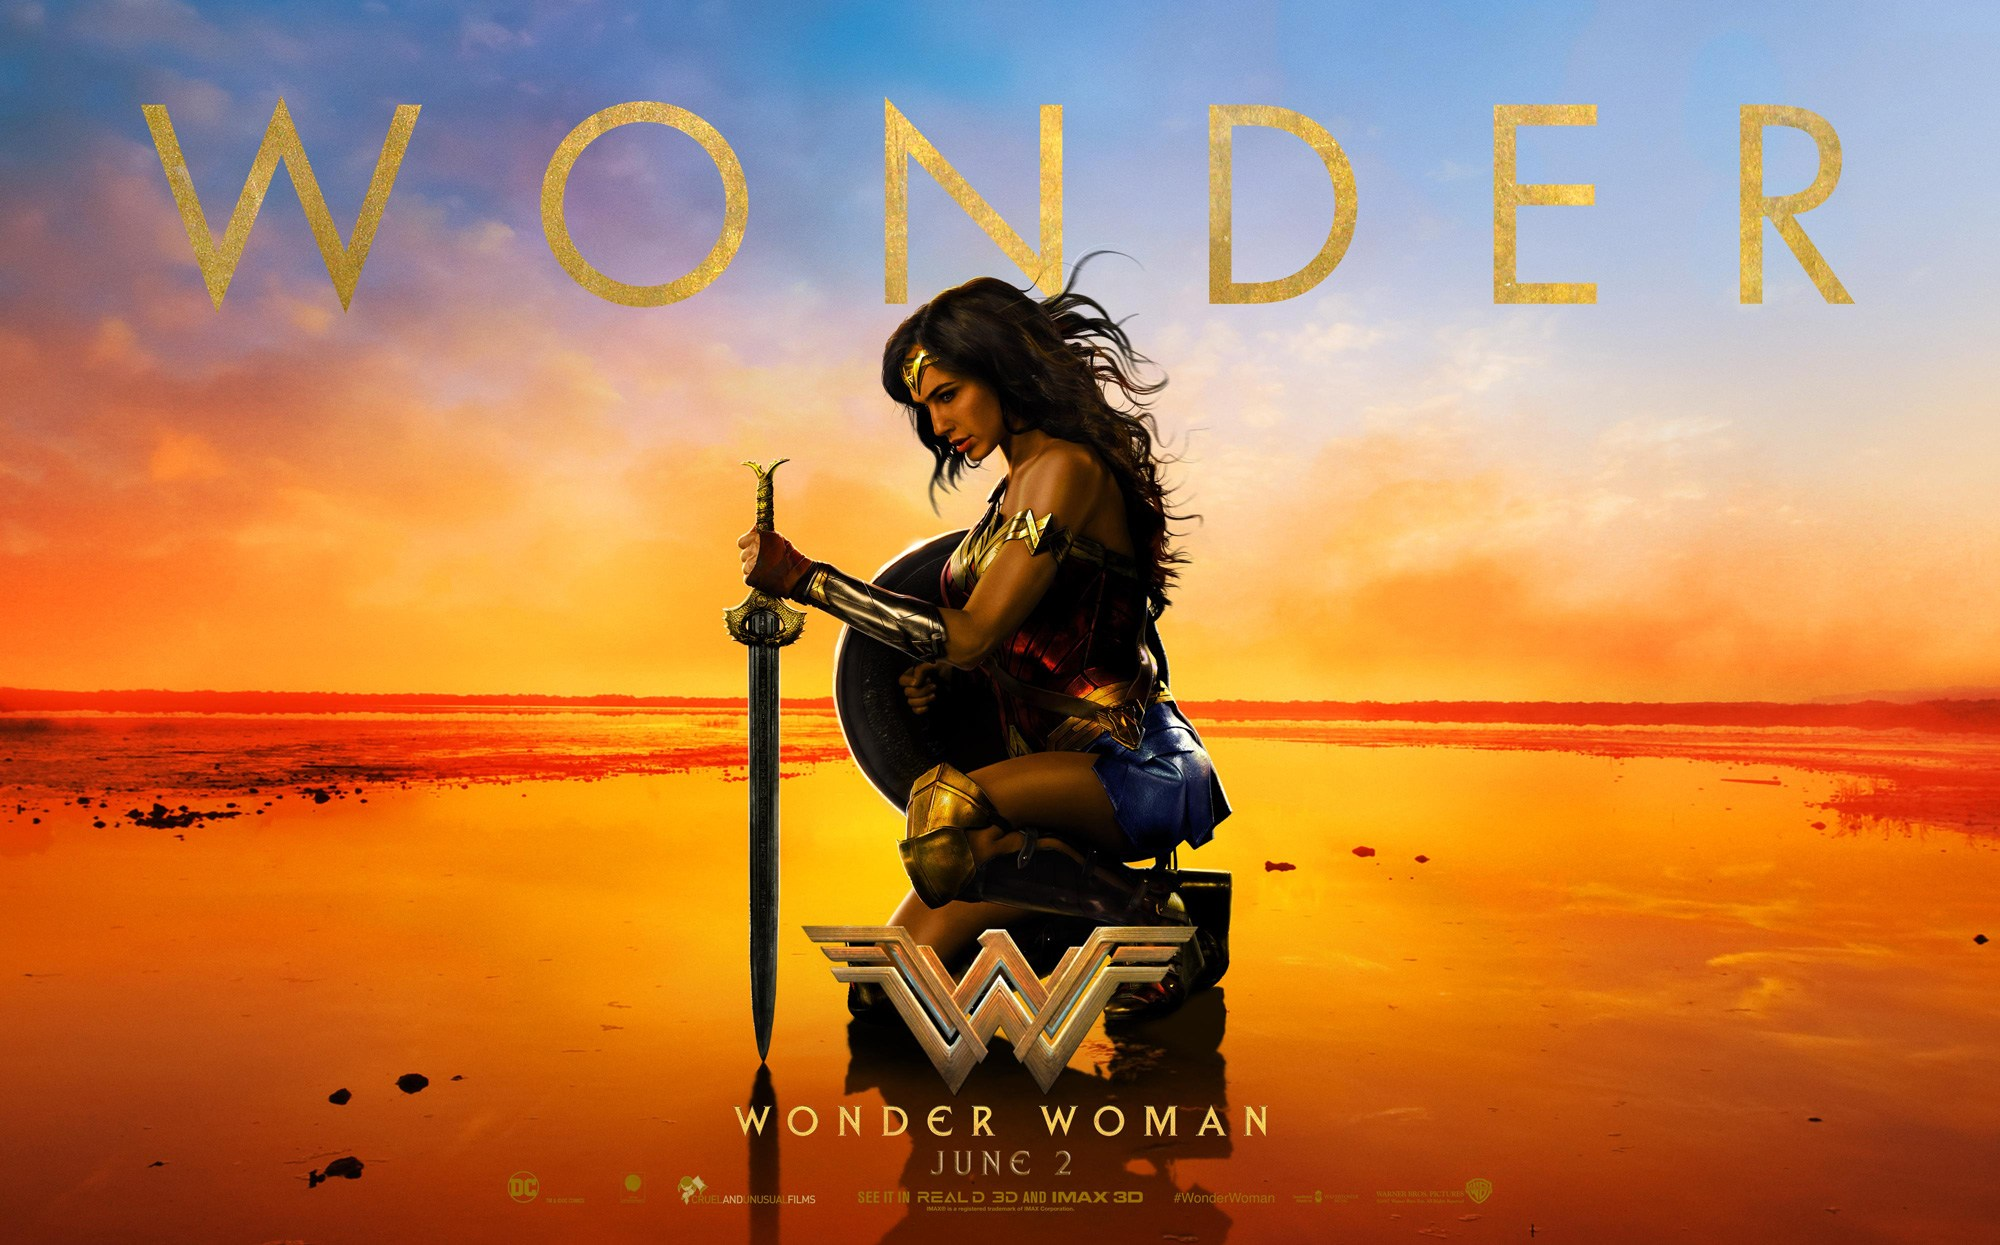 Wonder Woman's women-only screening causes outrage - Nerd Reactor